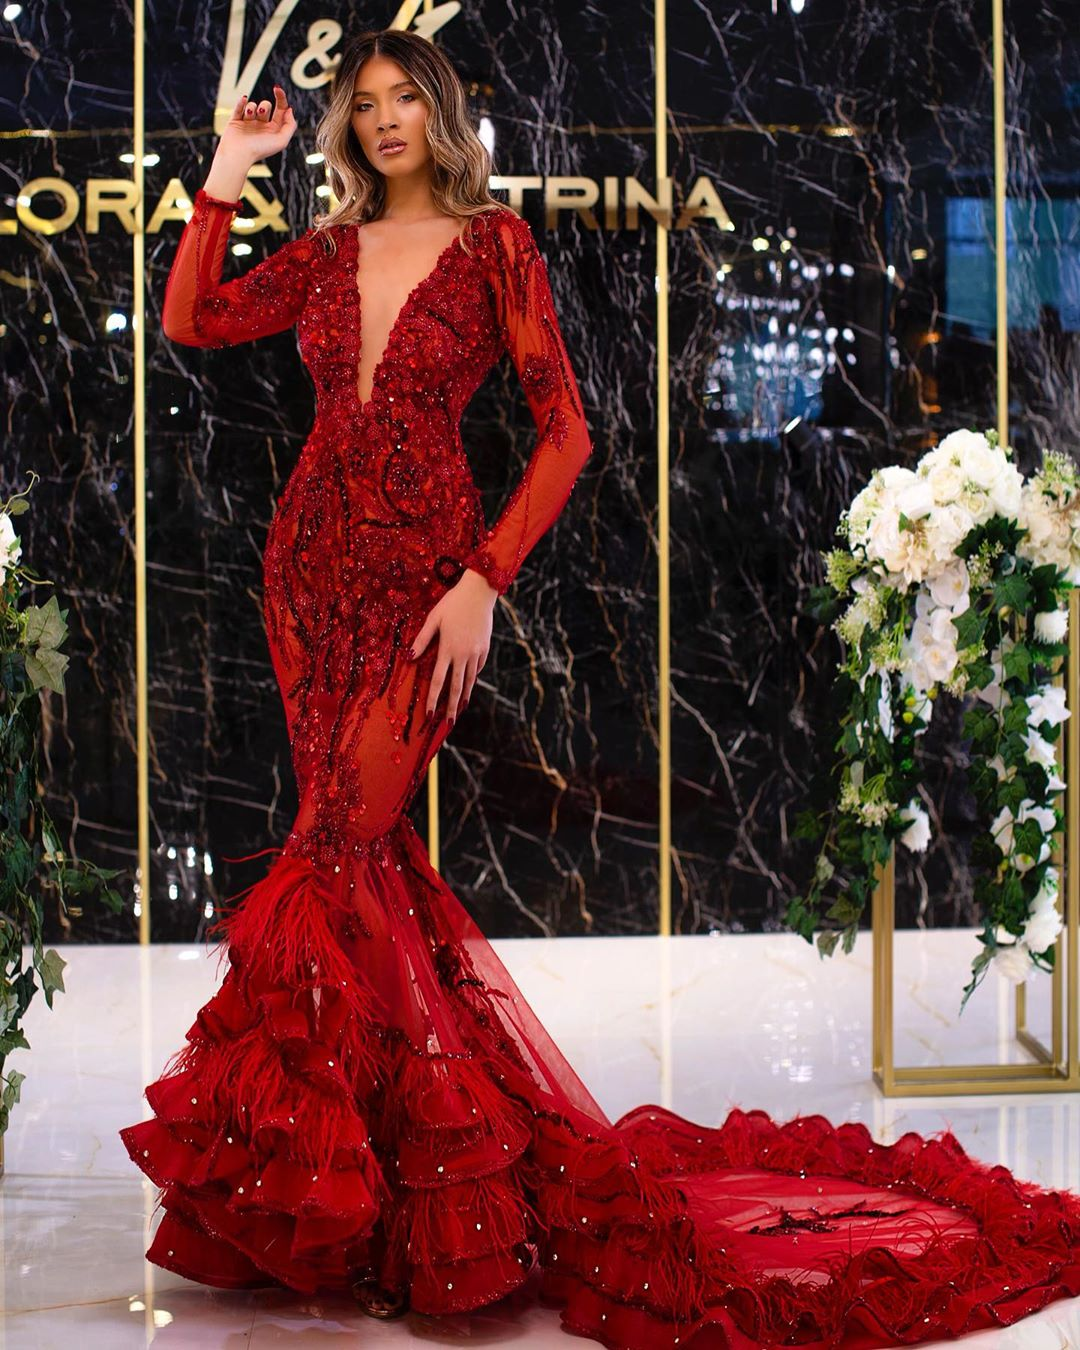 Dark Red Long Gown with Deep V-Neck & Full Sleeves.